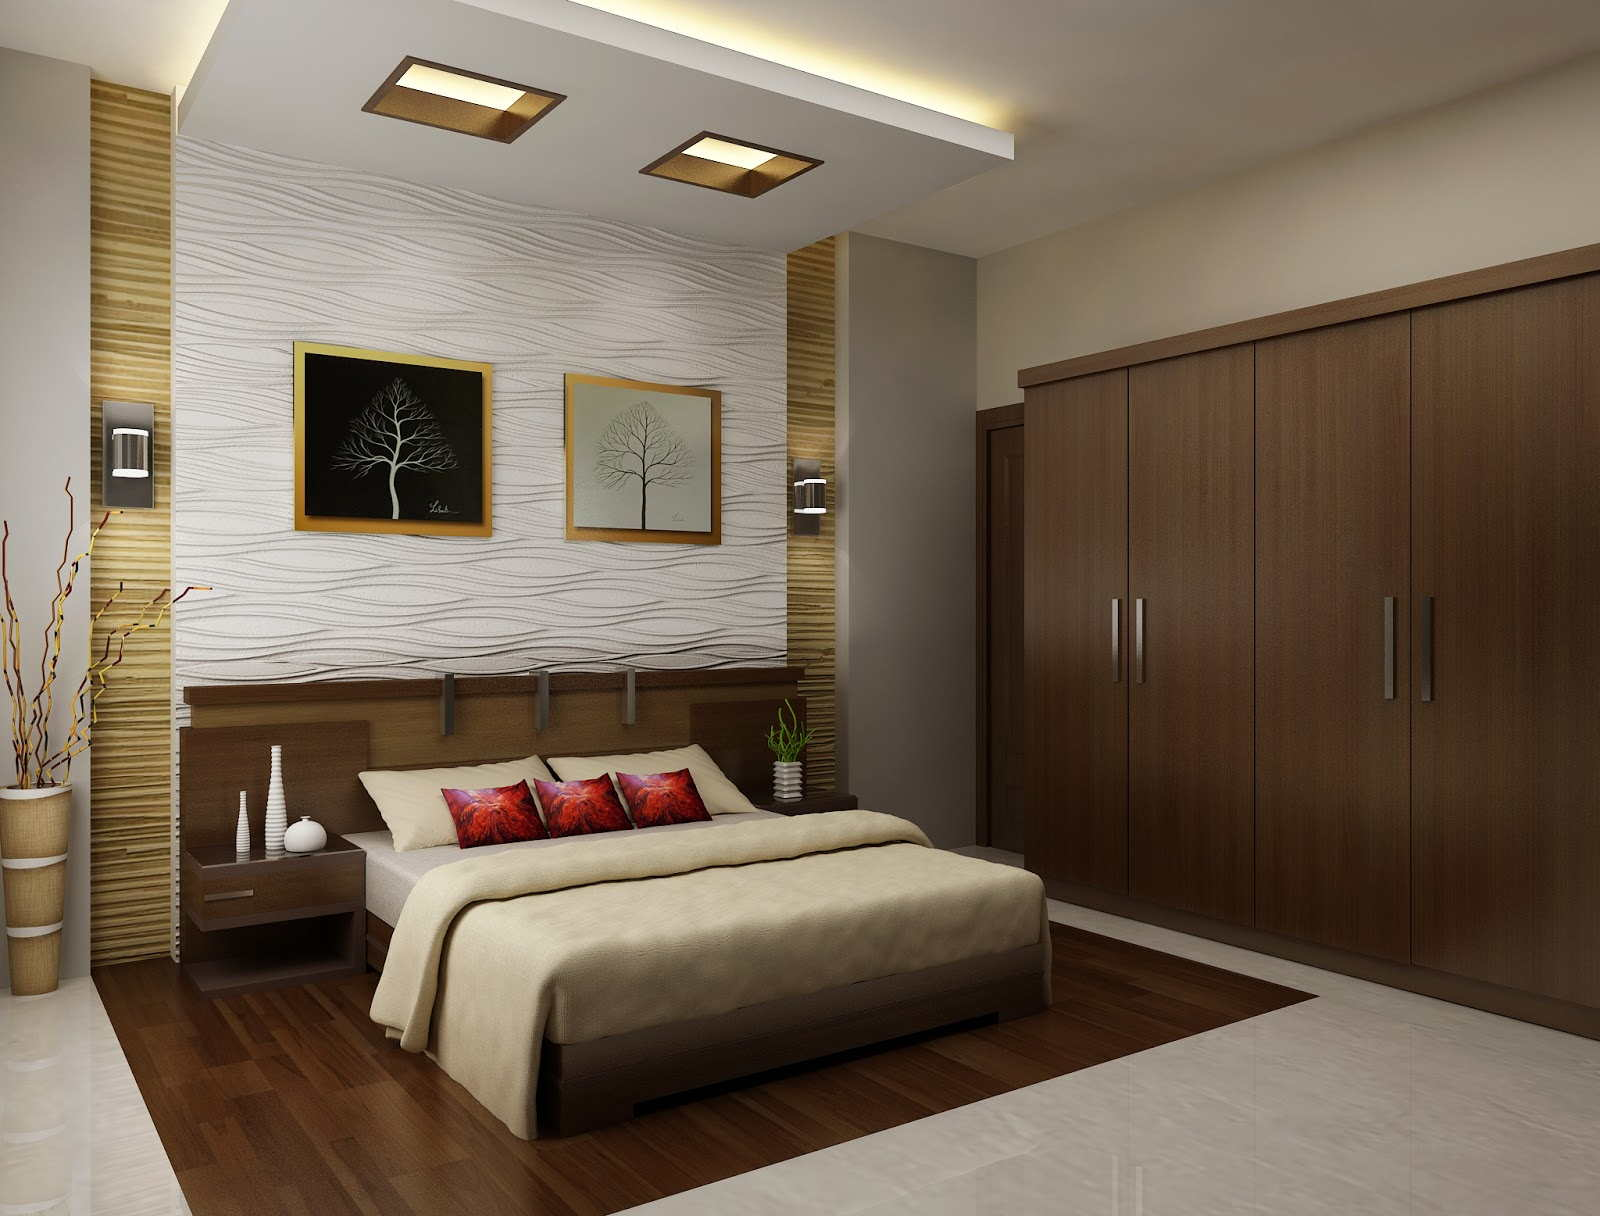 astounding bedroom wall interior design | 11 Attractive bedroom design ideas that will make your ...